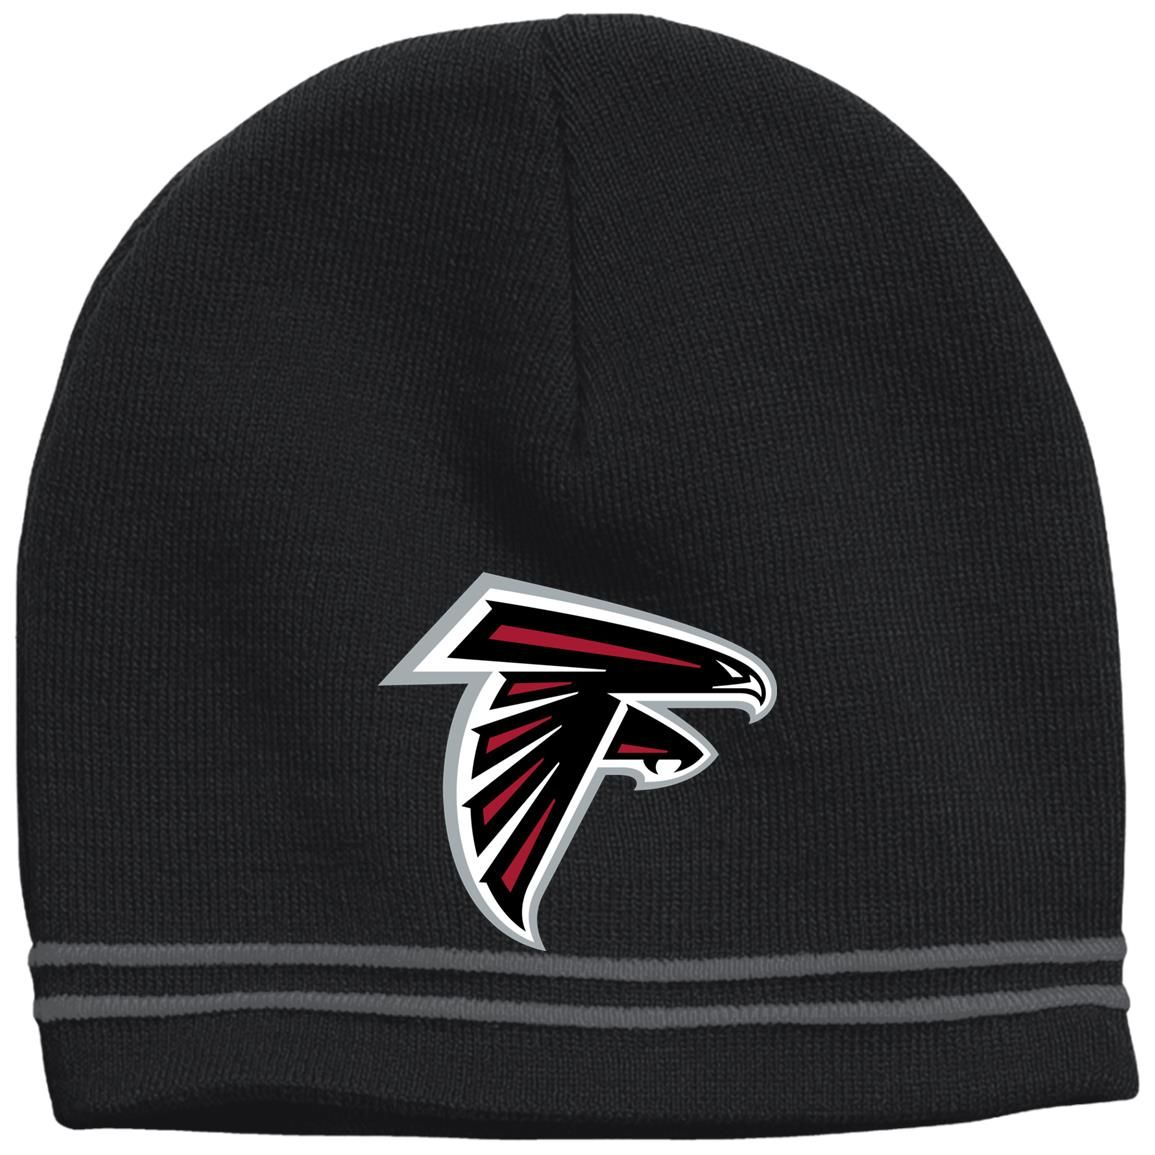 Atlanta Falcons Nfl Sport Tek Colorblock Beanie With Images Atlanta Falcons Logo Atlanta Falcons Falcon Logo Also cricket, rugby, nfl, tennis. pinterest